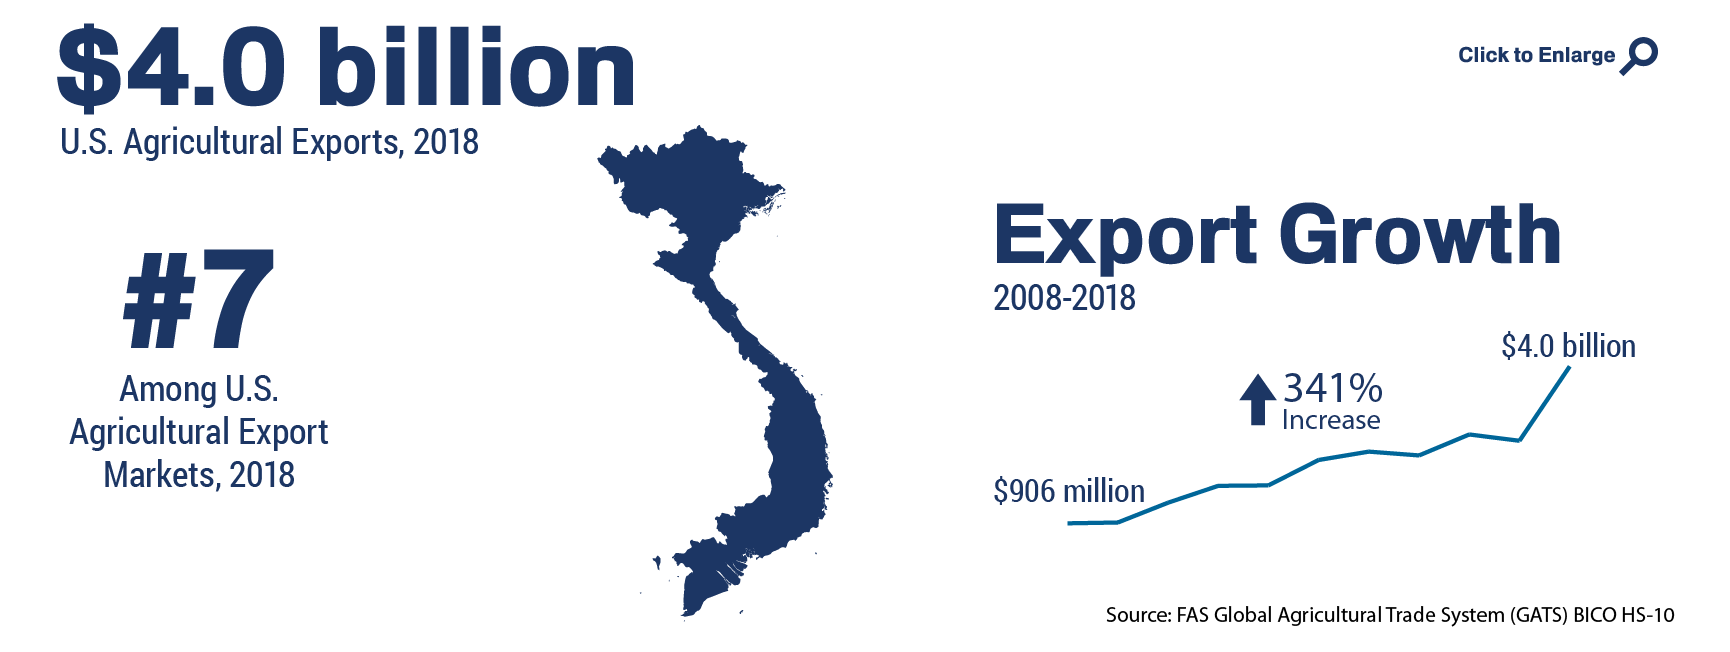 Infographic showing the ranking and total of U.S. agricultural trade to Vietnam in 2018